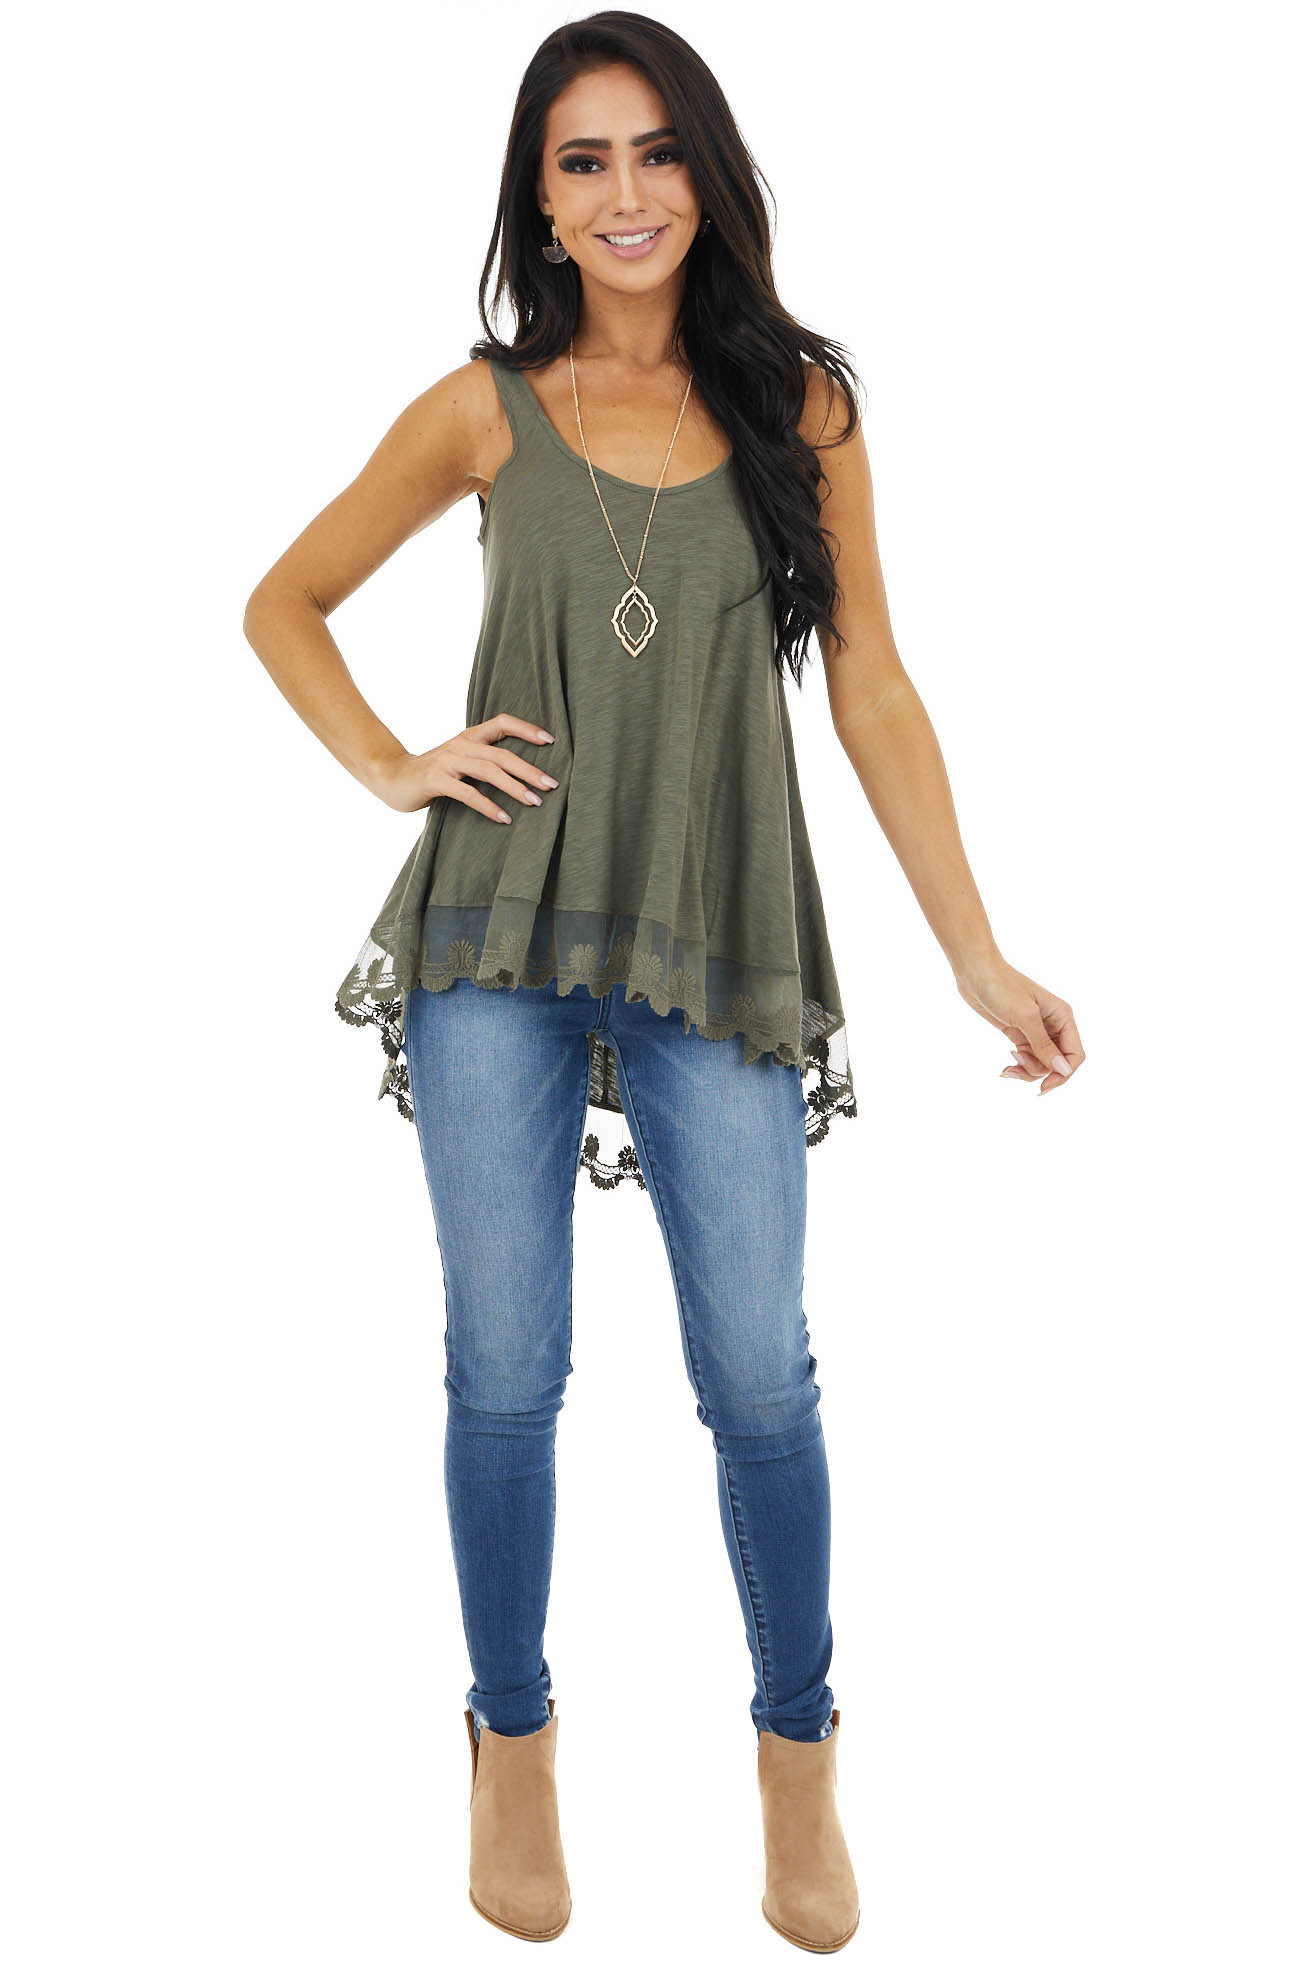 Olive Knit Tank Top with Scalloped Lace Hemline